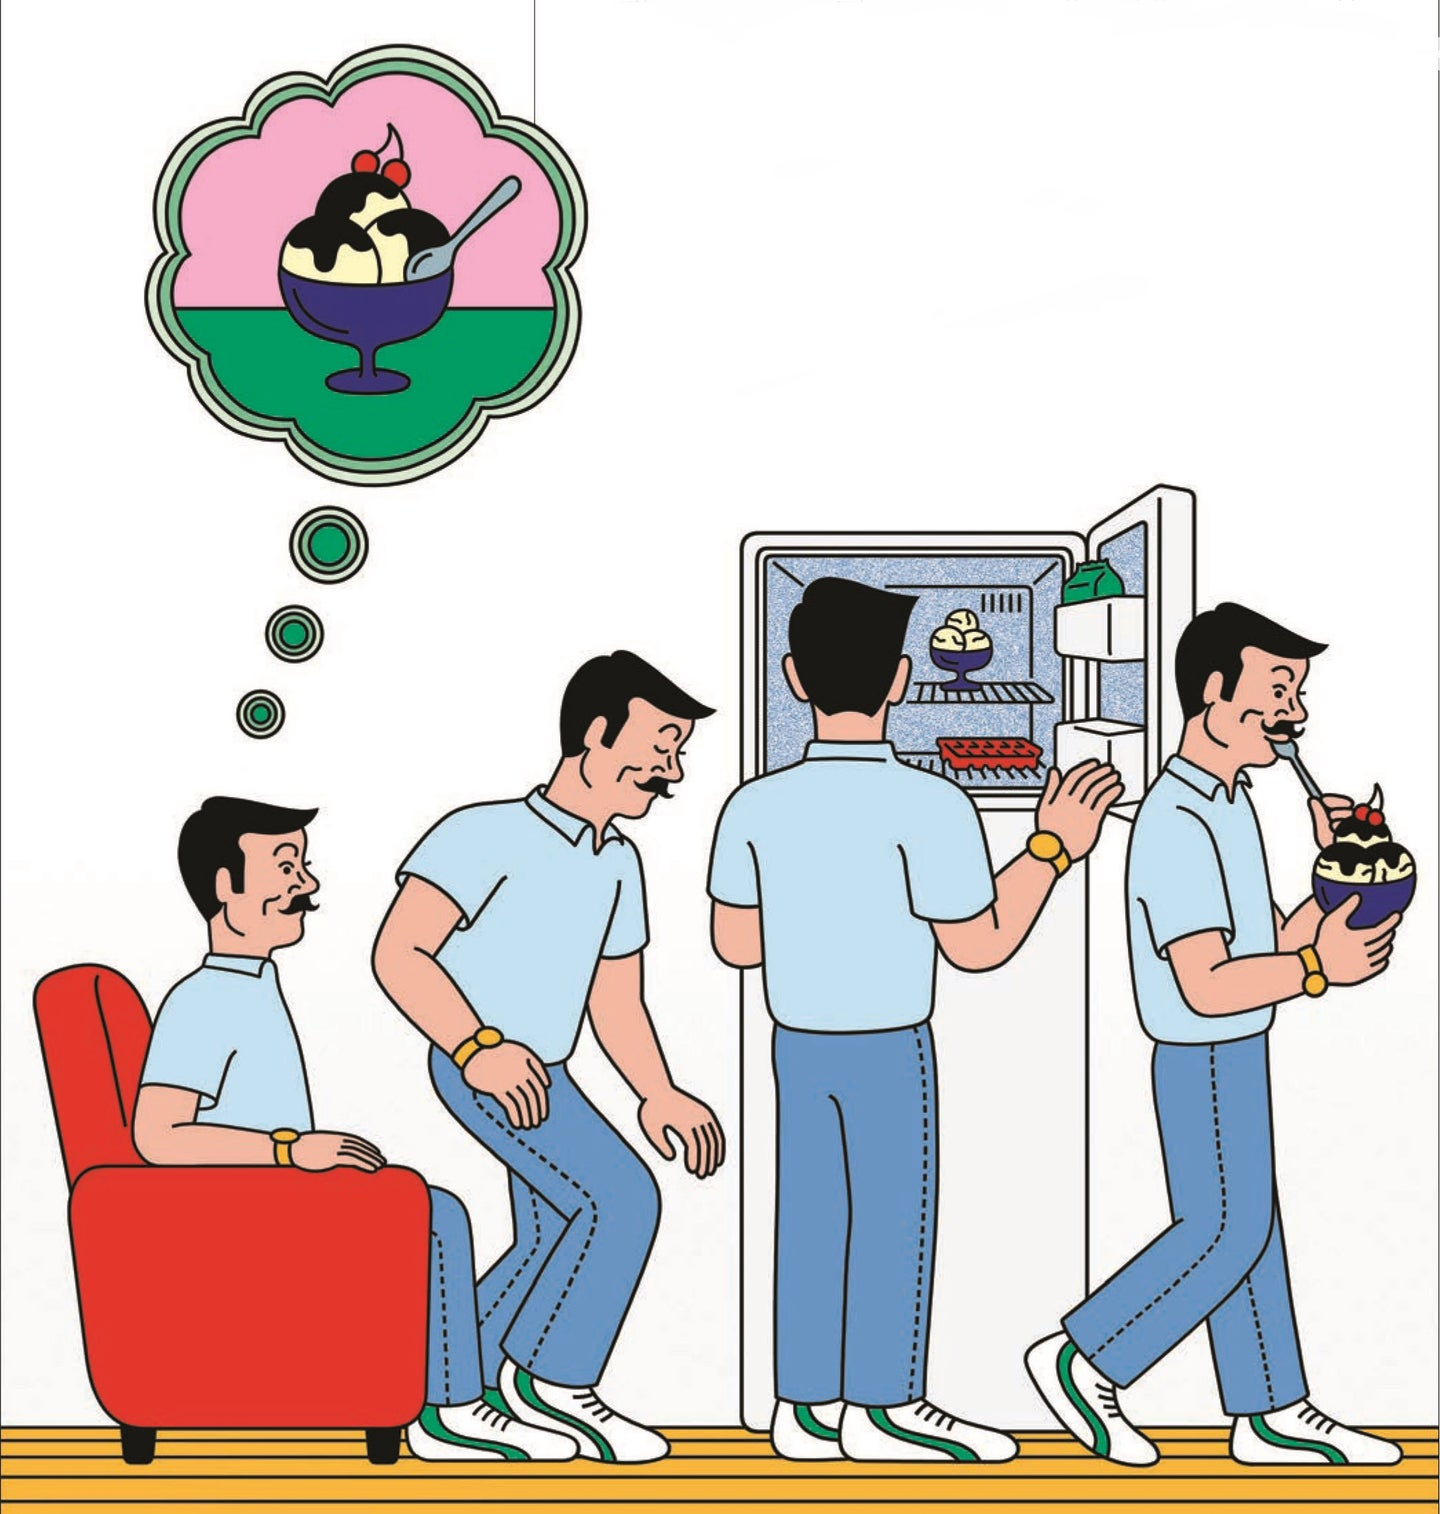 An illustration of a mustached individual getting up from an arm chair and getting a bowl full of ice cream from the freezer